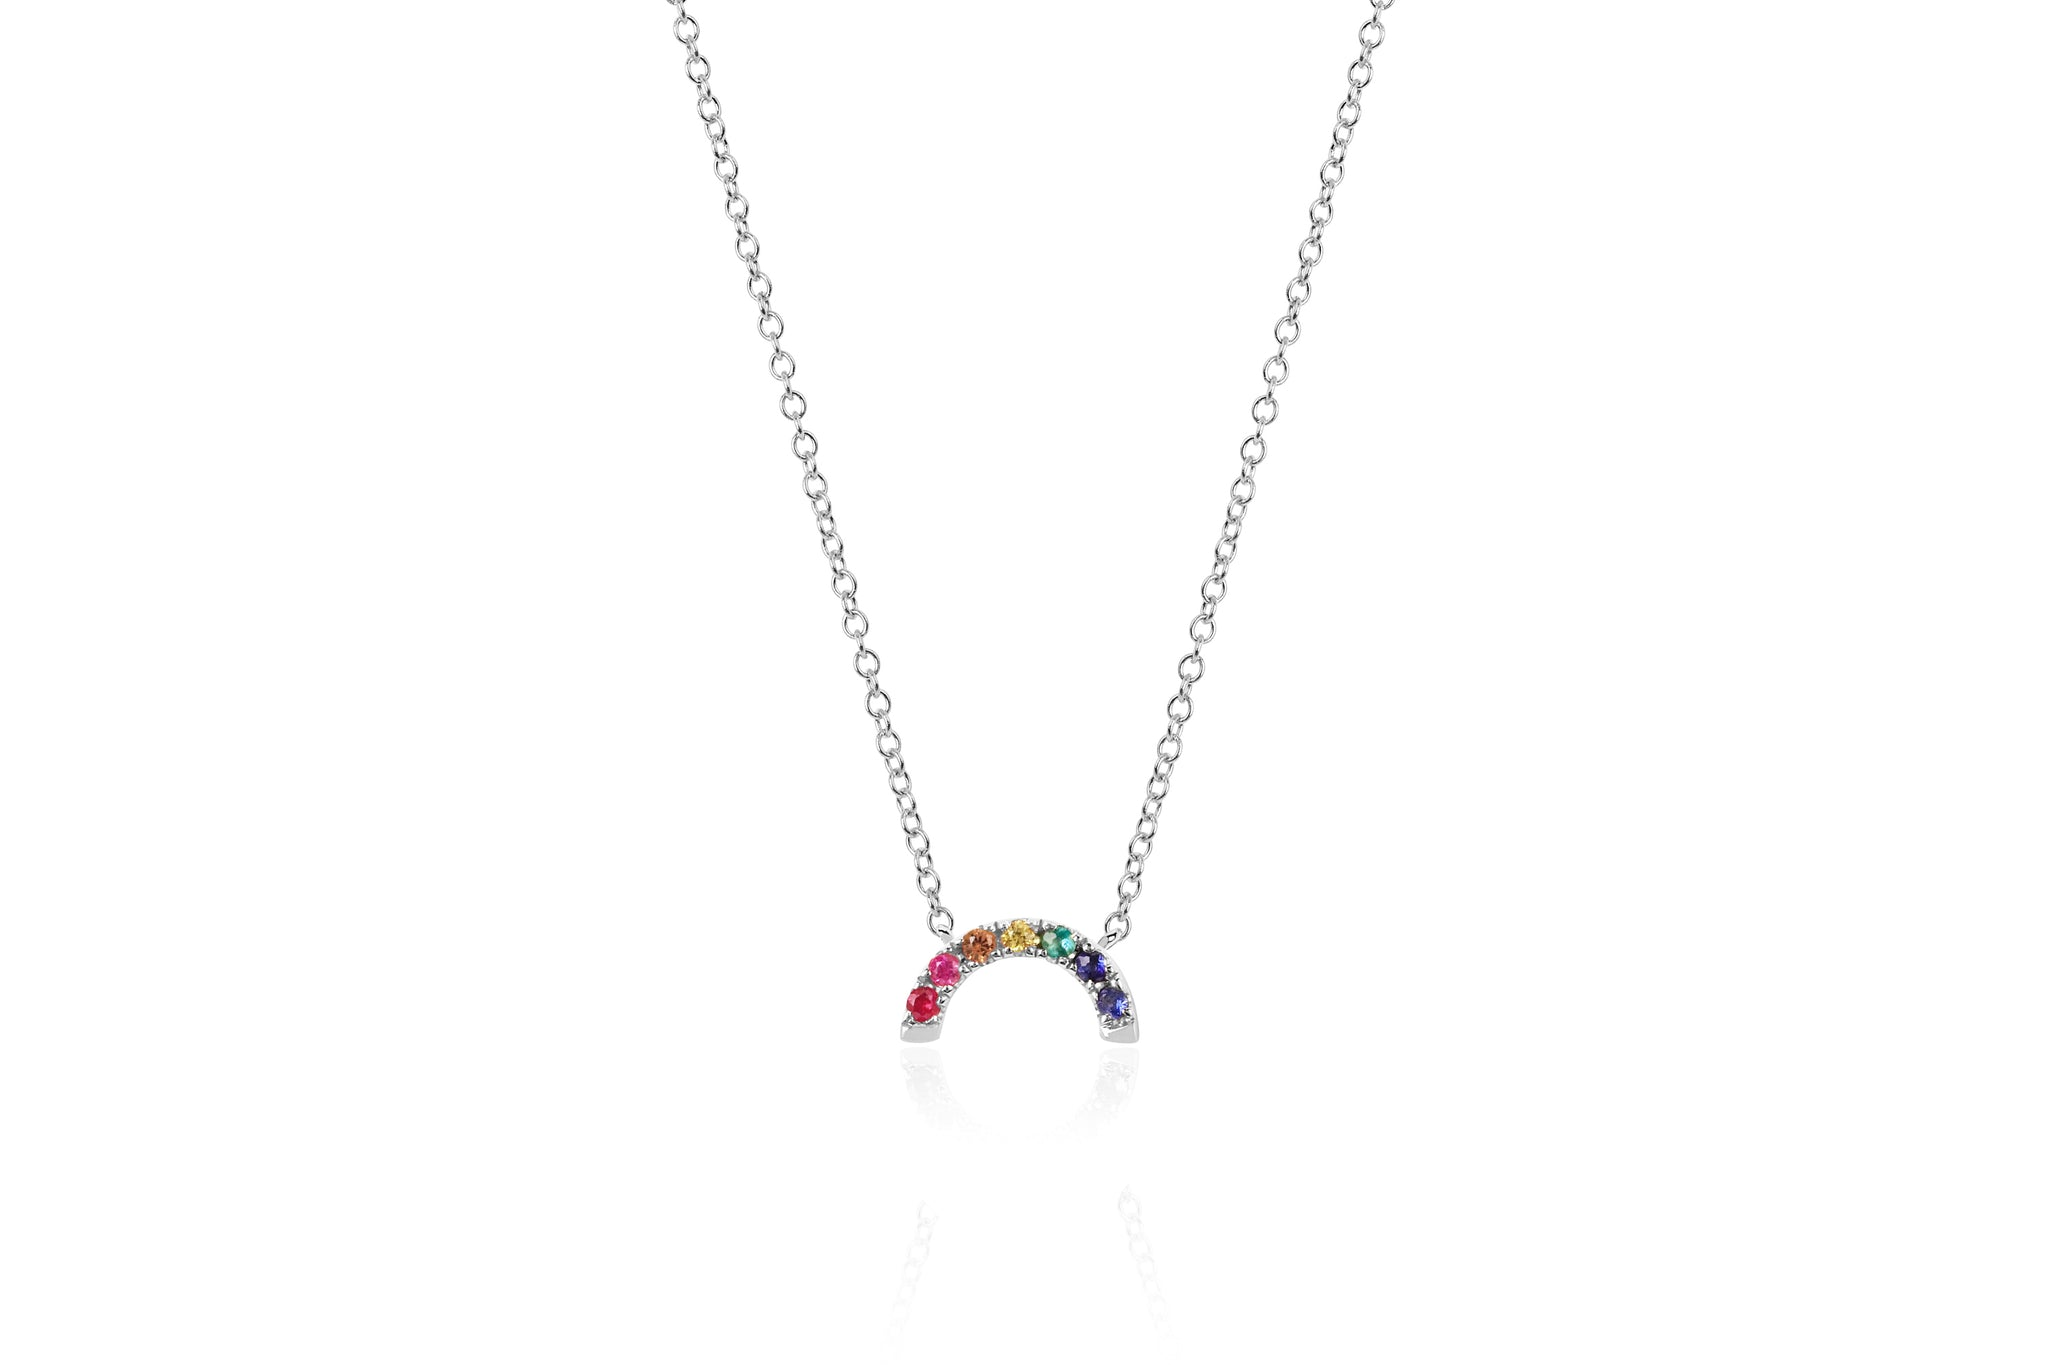 necklace stone diamond insta evil eye rainbow ef and products collection gold strand